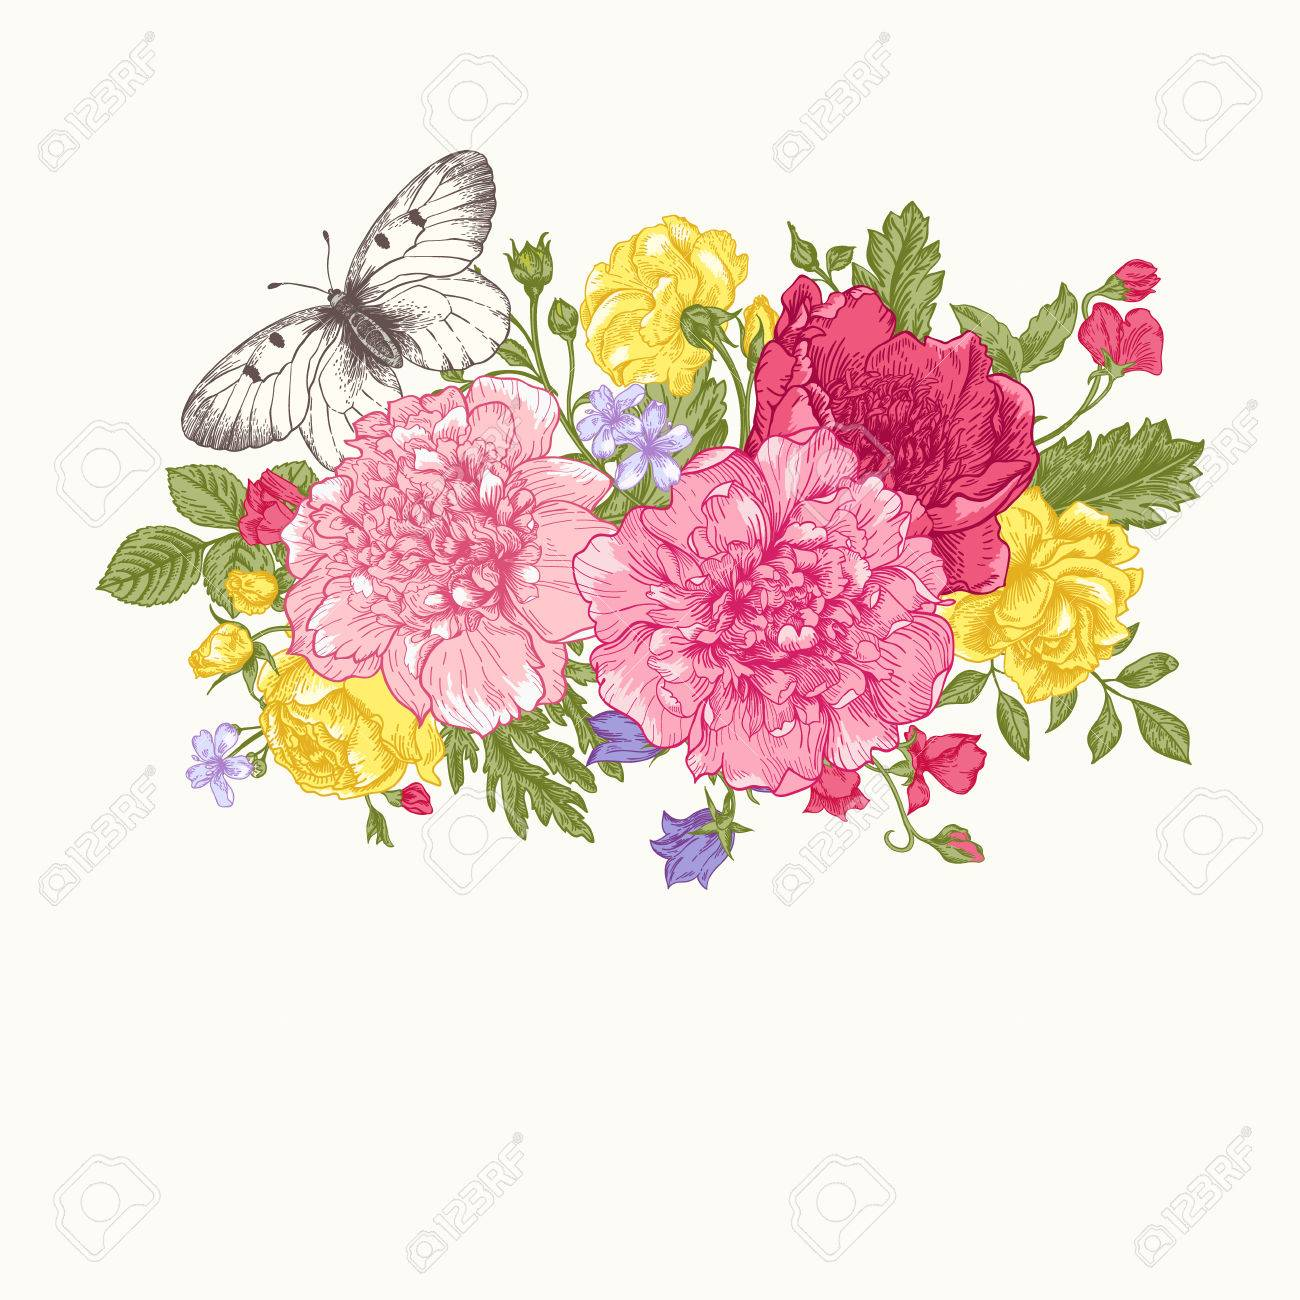 Floral Background. Card With A Bouquet Of Flowers And A Butterfly. Peonies,  Roses